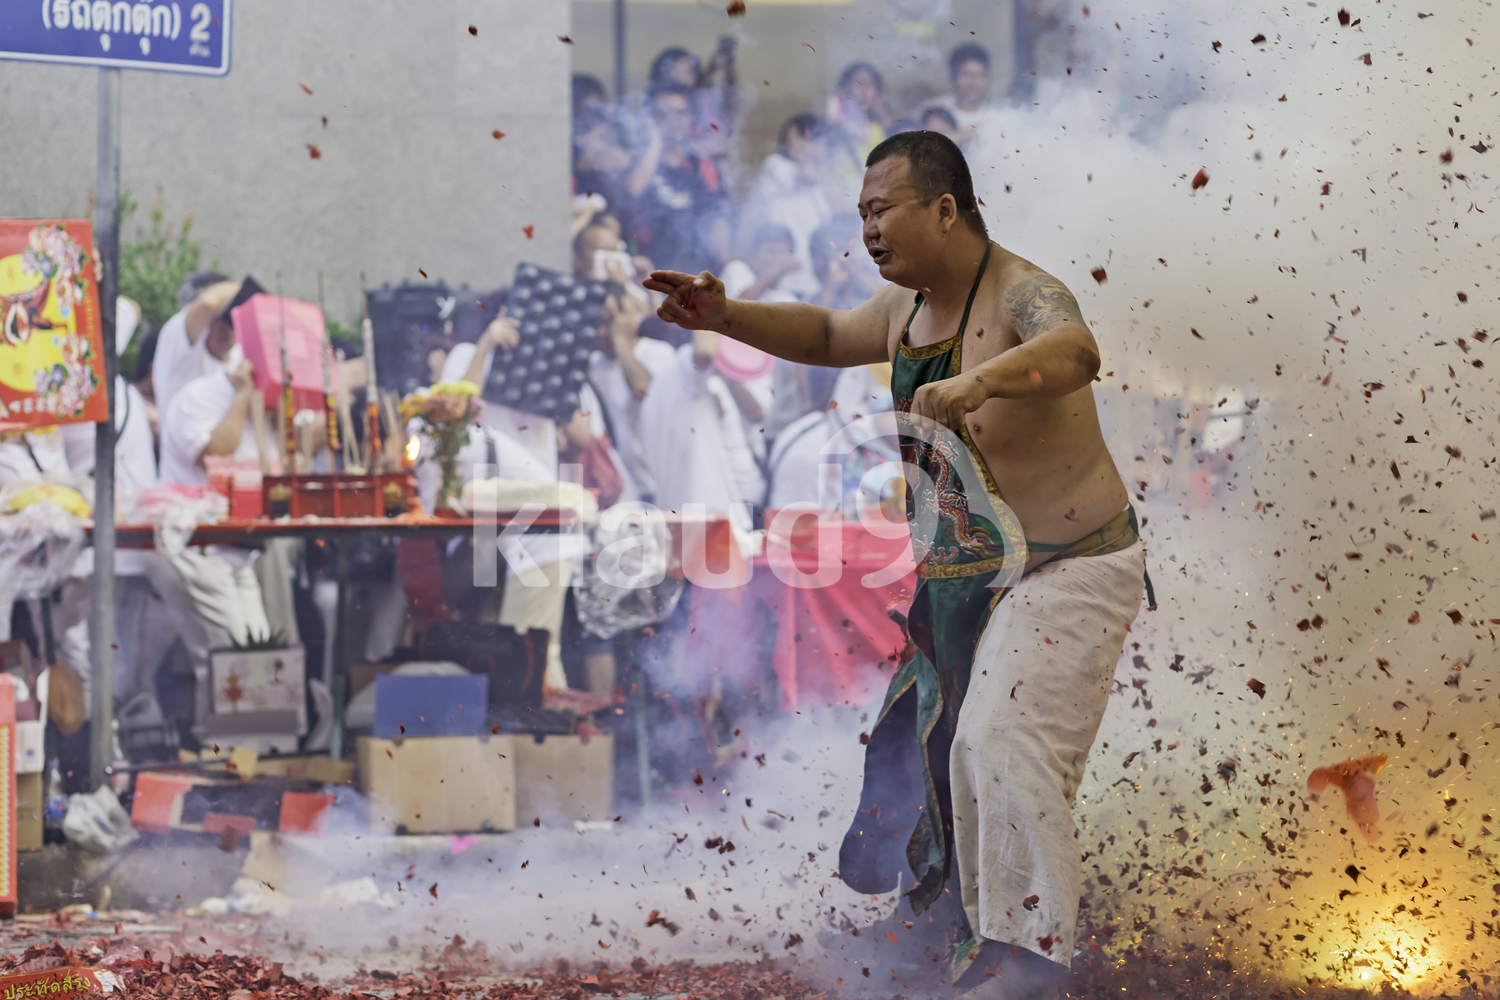 Man performing a firecracker dance